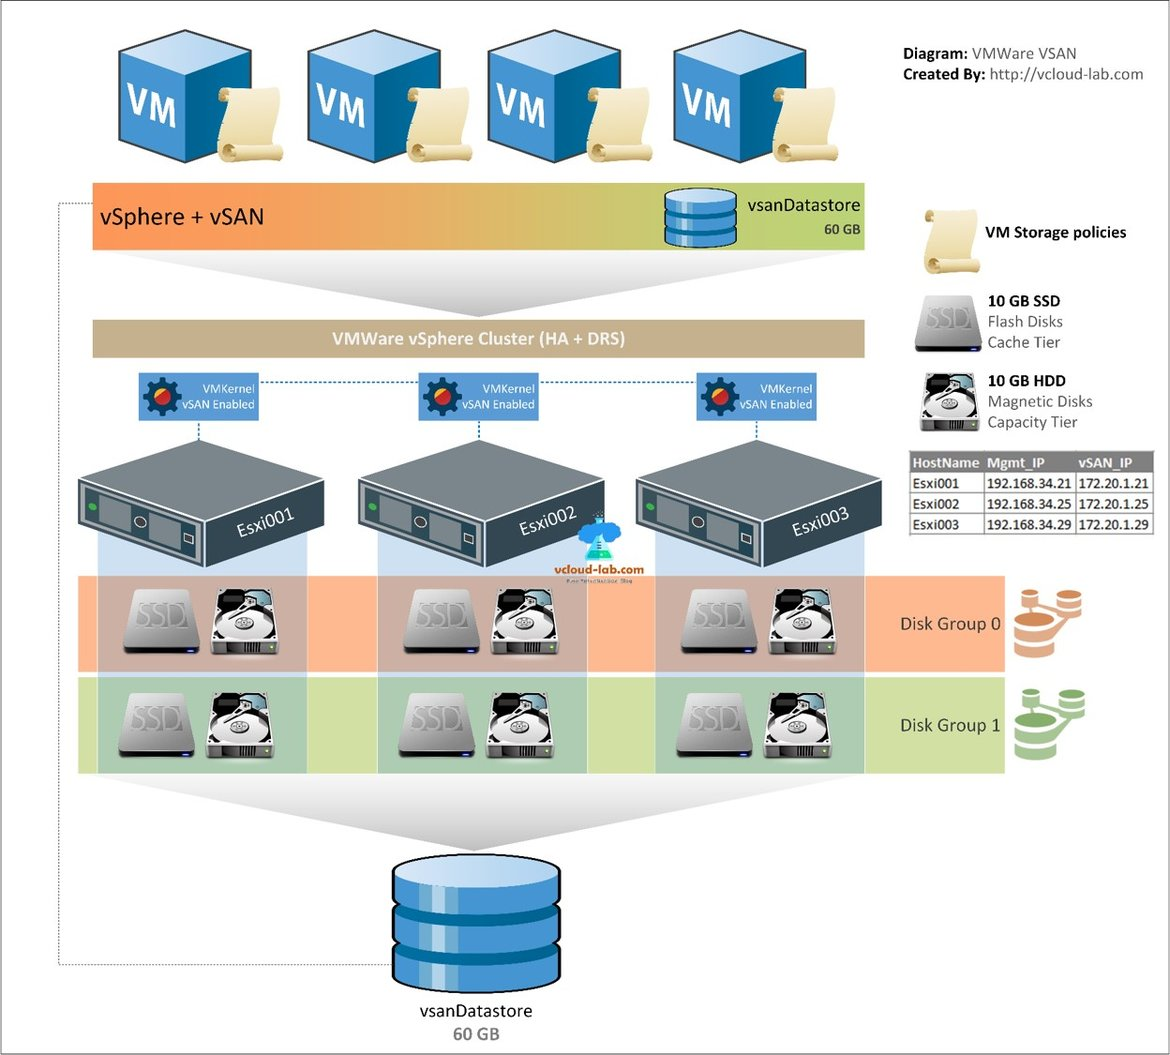 vmware vsphere vsan, virtual san, disk group, ssd, hdd, flash disk, cache tier, capacity tier, vsan datastore, vmkernel, esxi cluster, aggregated disks storage